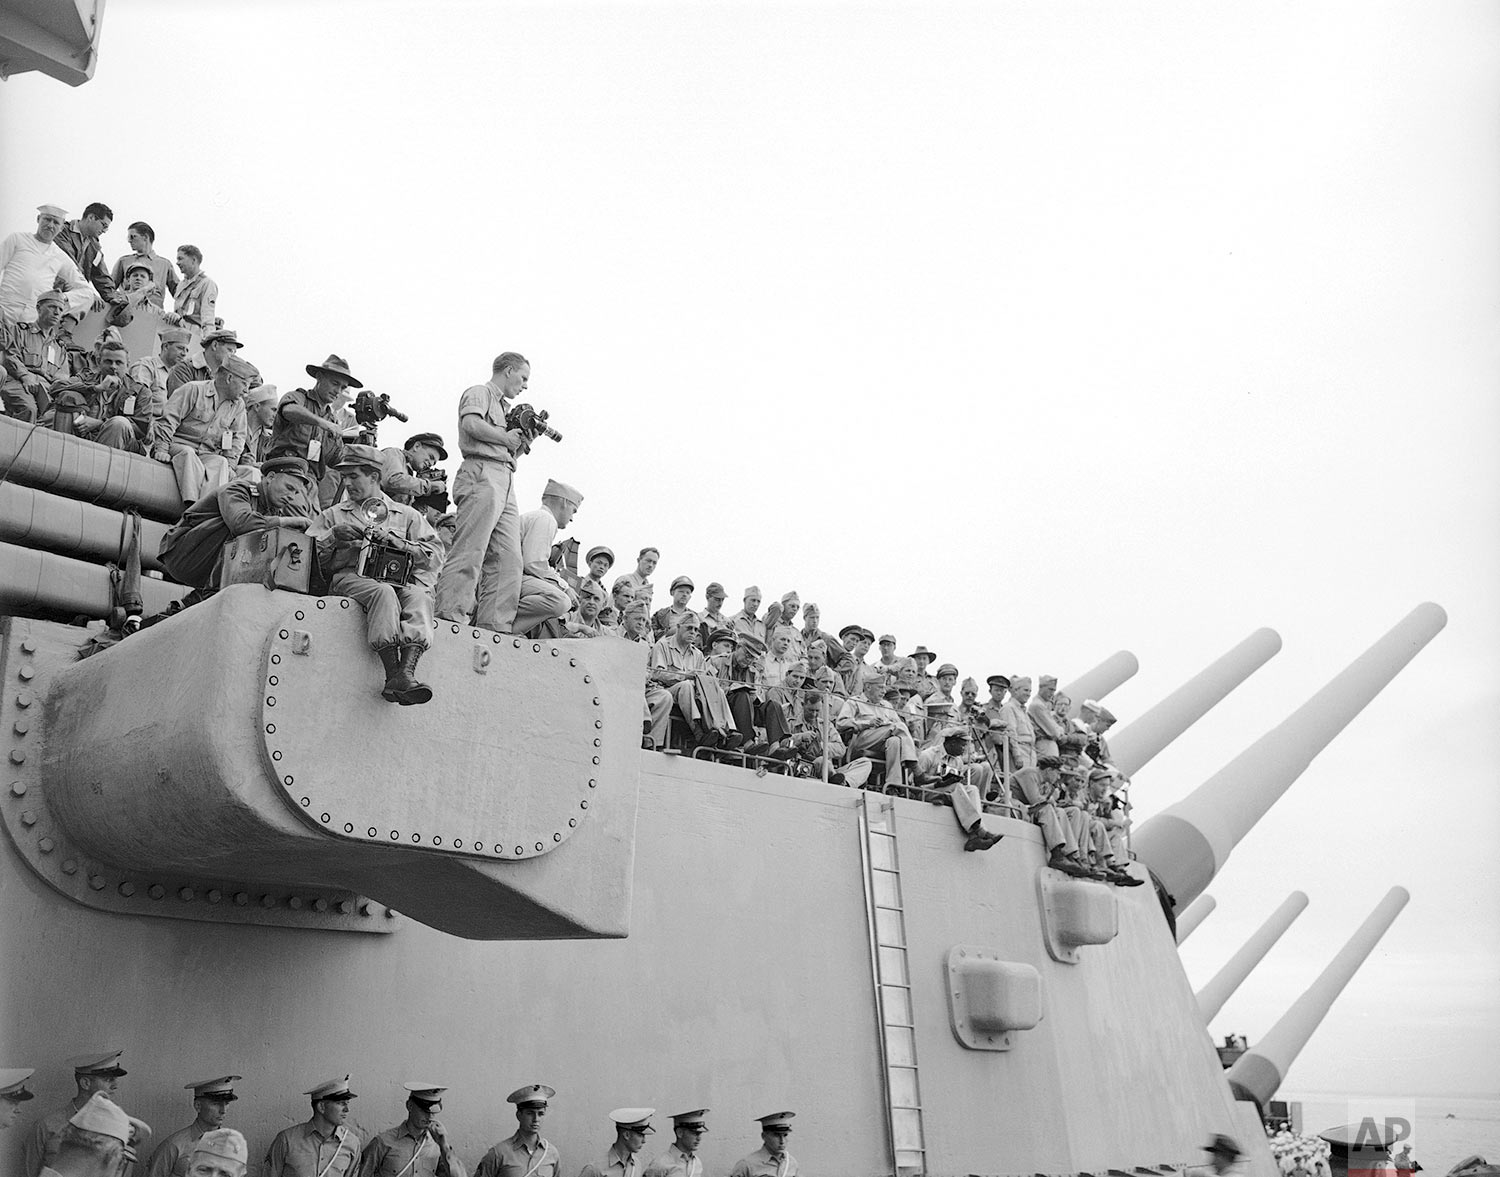 """Spectators and photographers use 16"""" gun turret in Japan, as vantage point on the USS Missouri. (AP Photo/Max Desfor)"""